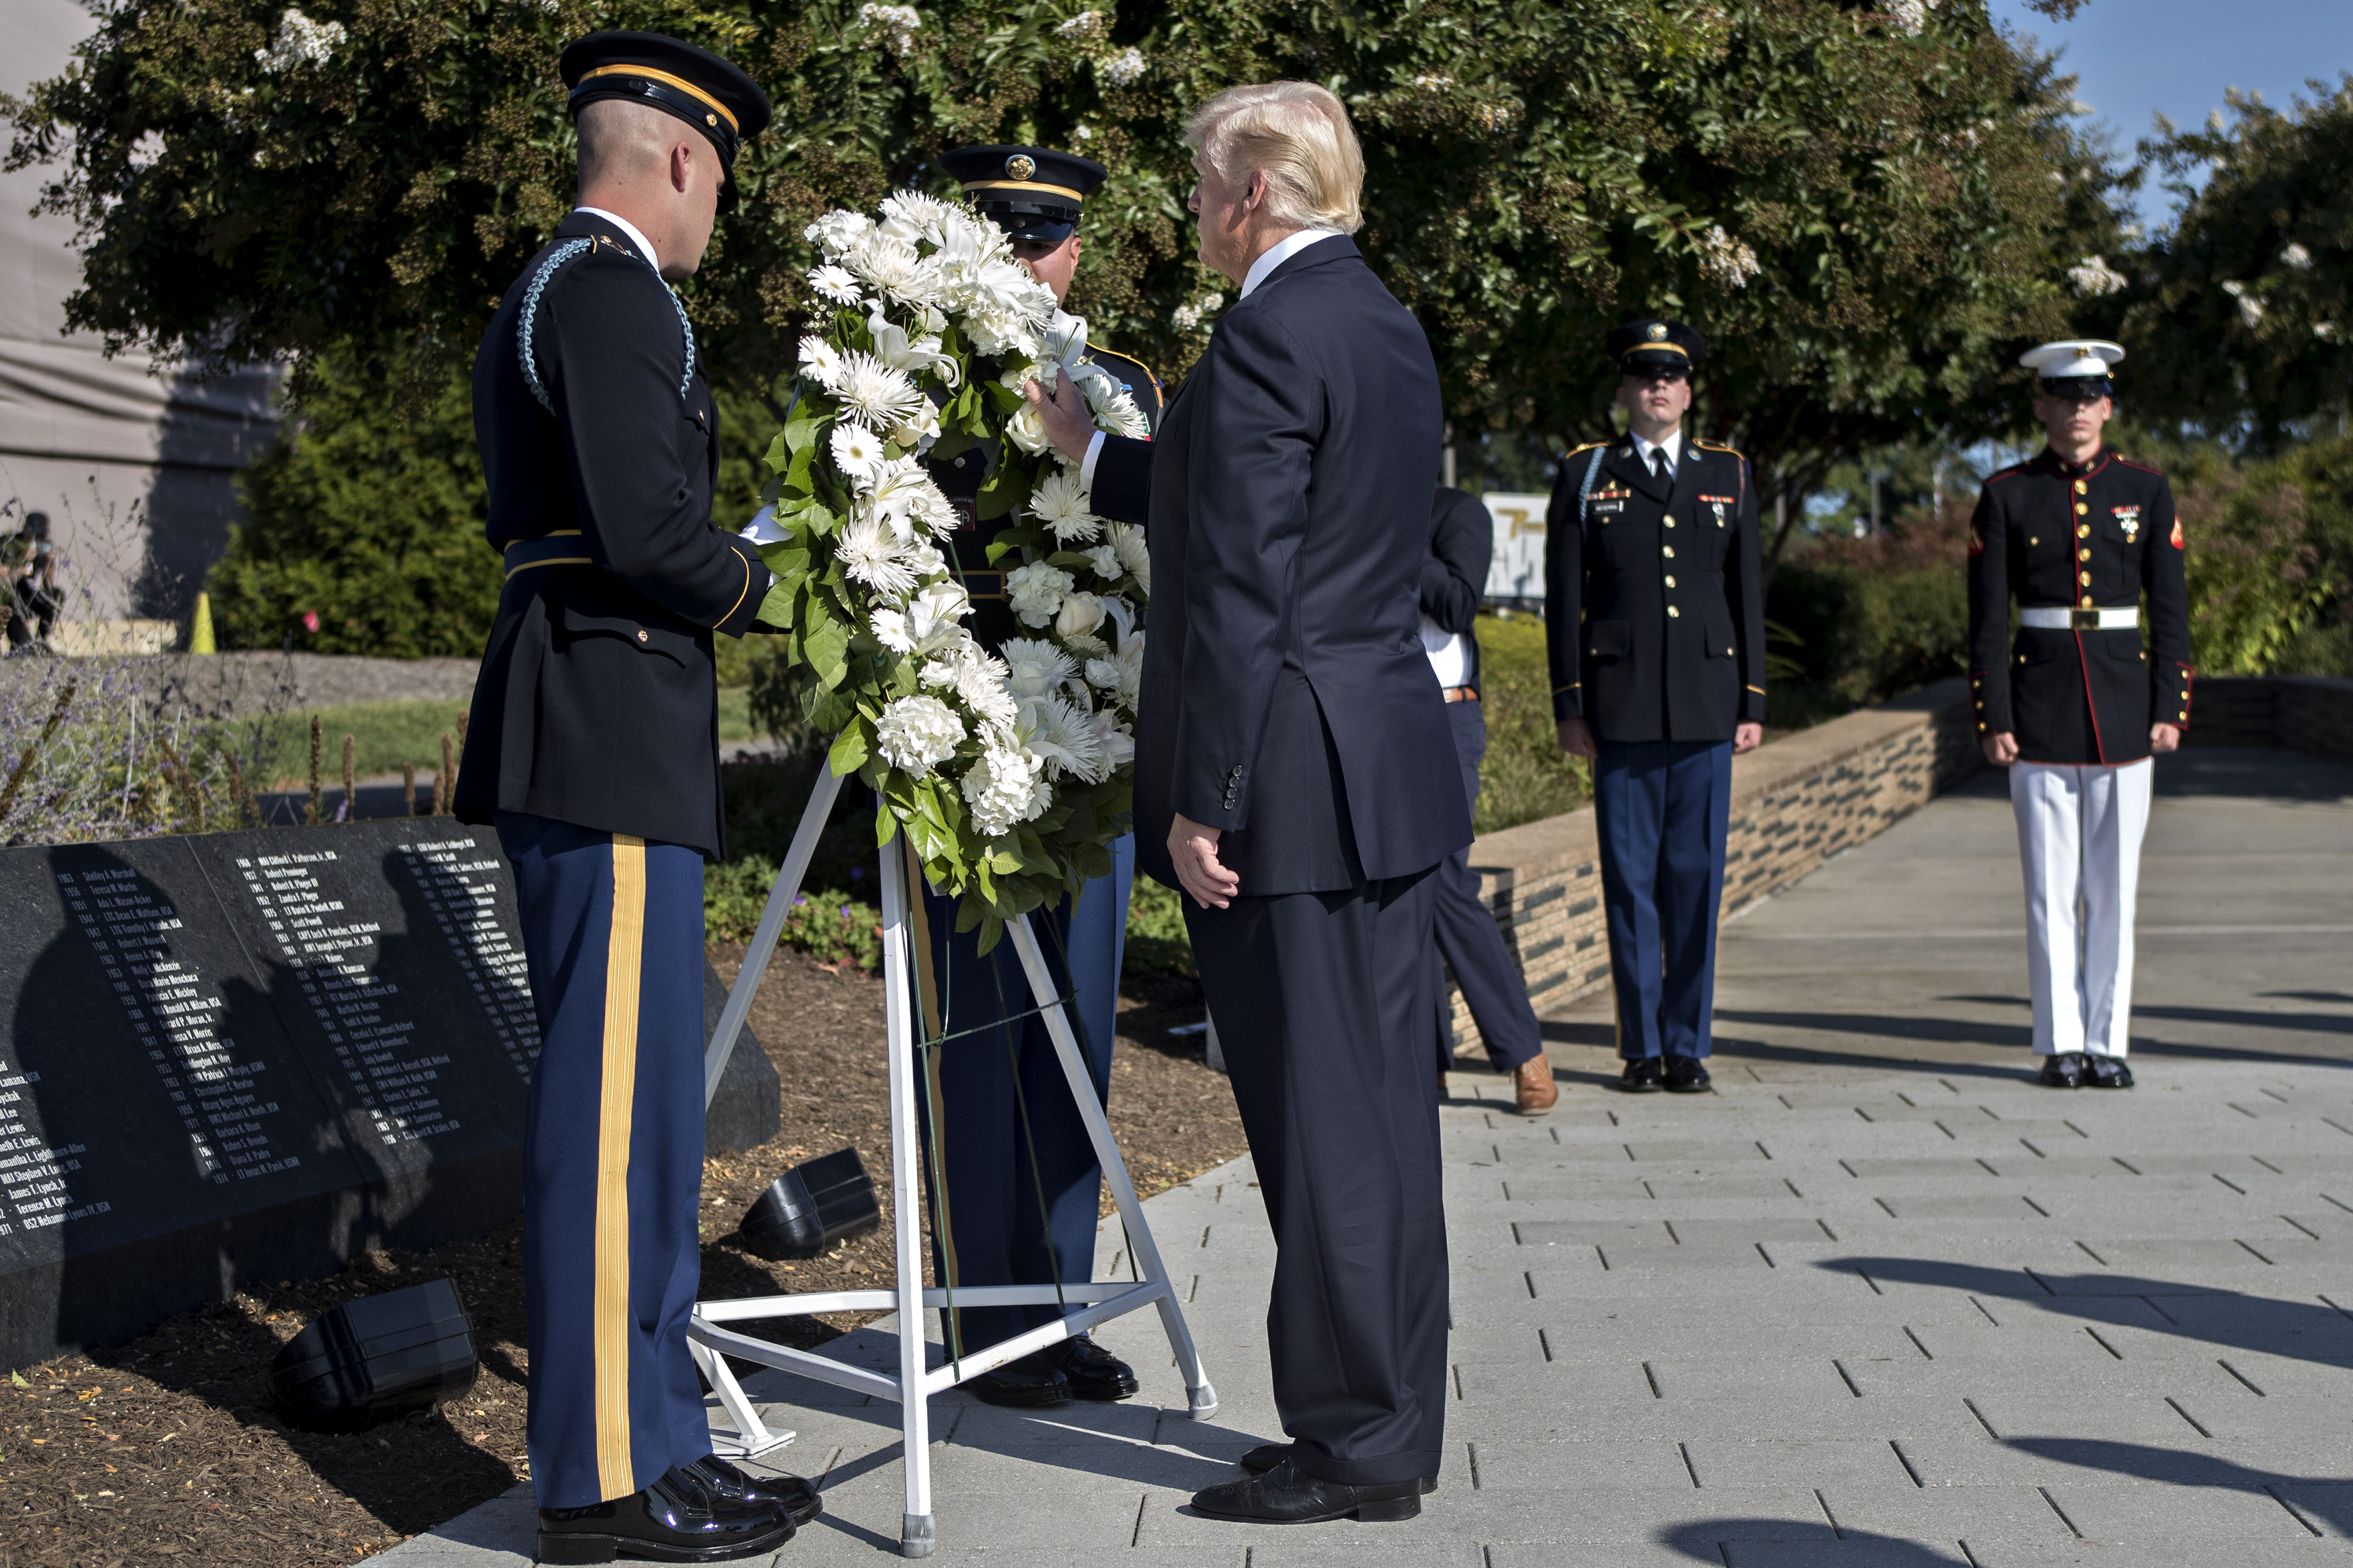 U.S. President Donald Trump lays a wreath at a ceremony commemorating the September 11, 2001 terrorist attacks at the Pentagon in Washington, D.C on Sept. 11, 2017. (Andrew Harrer-Pool/Getty Images)